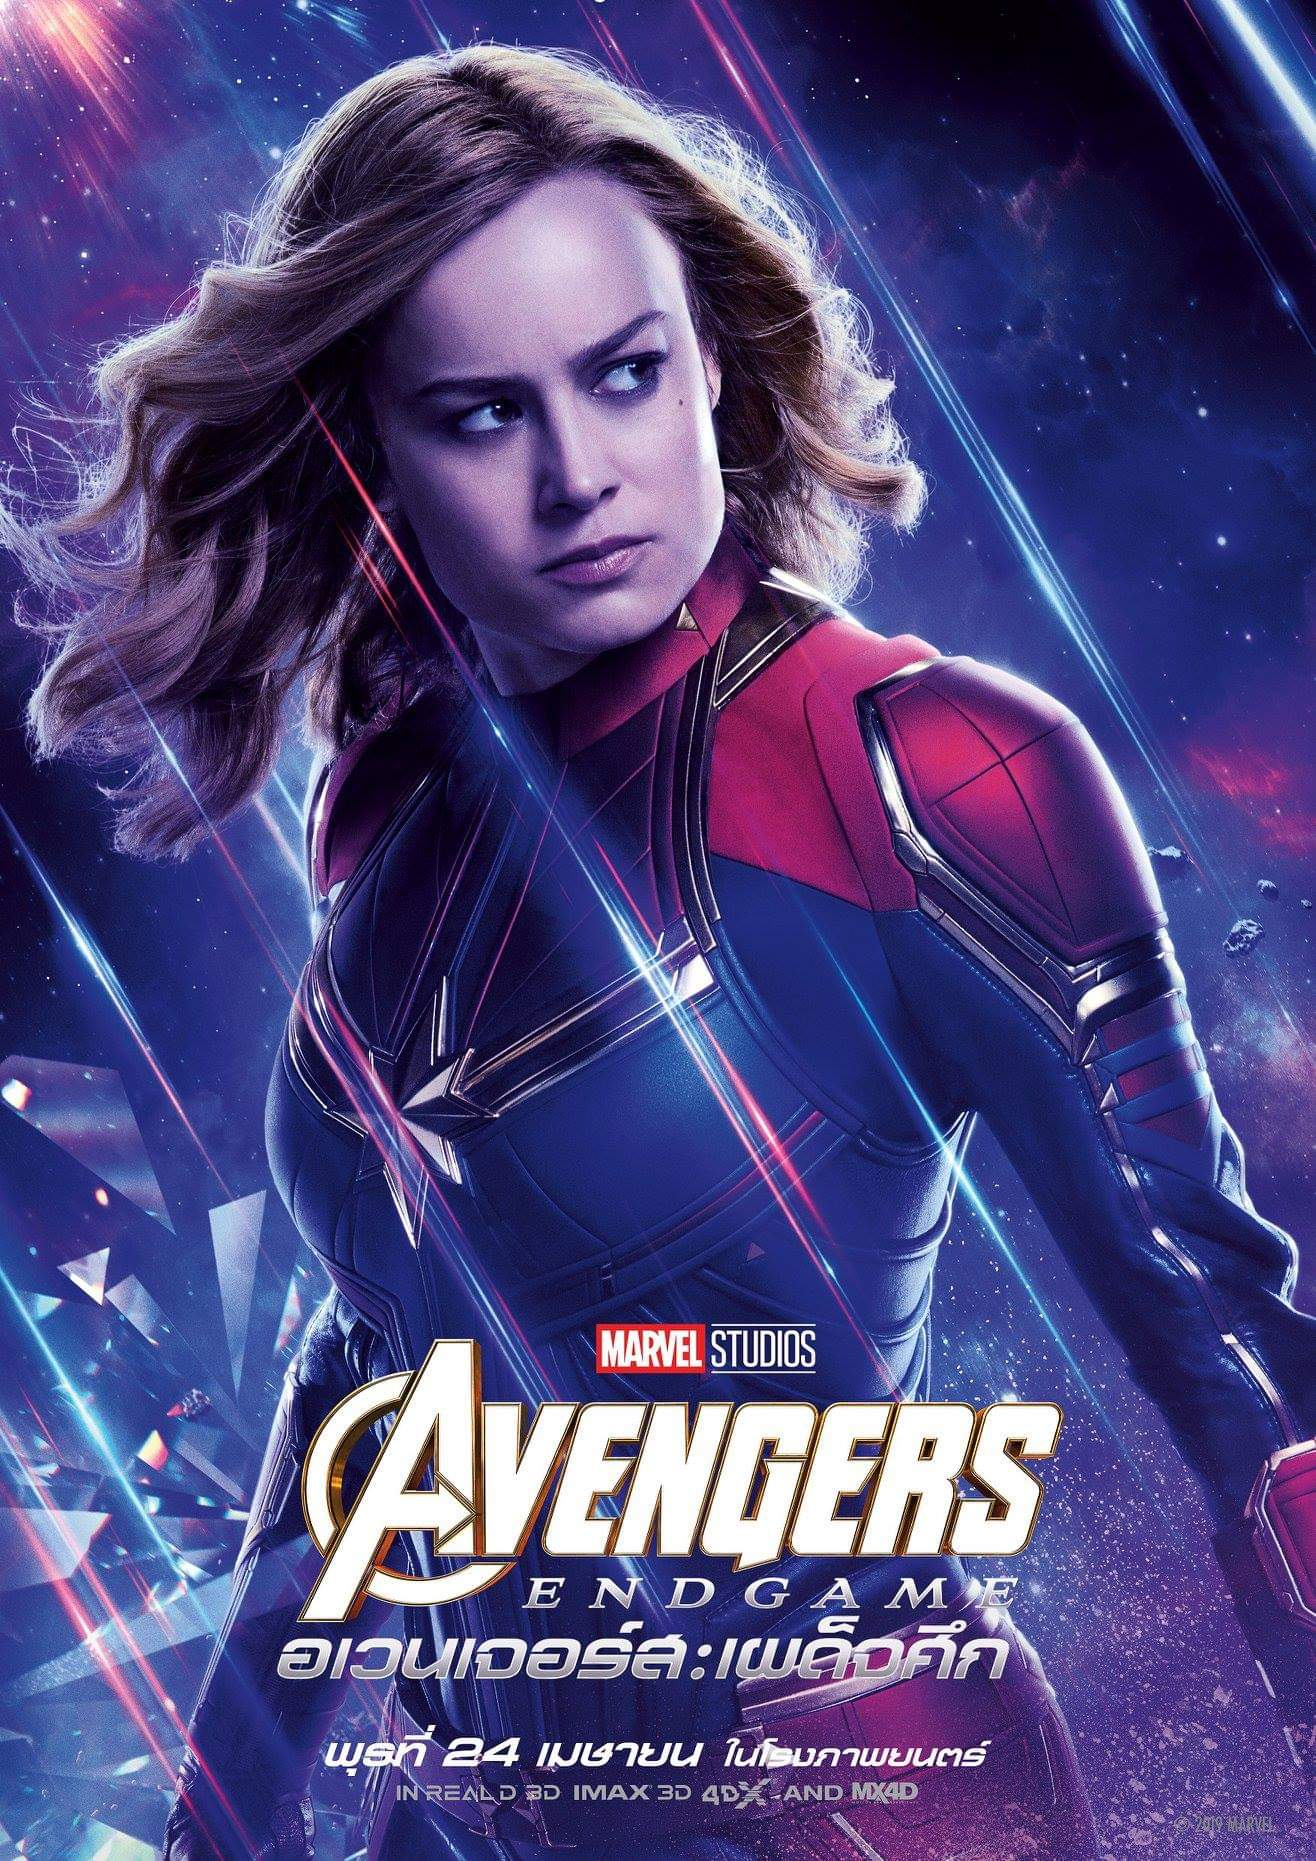 Best Avengers Endgame Poster Yet Revealed On The Cover Of Marvel S